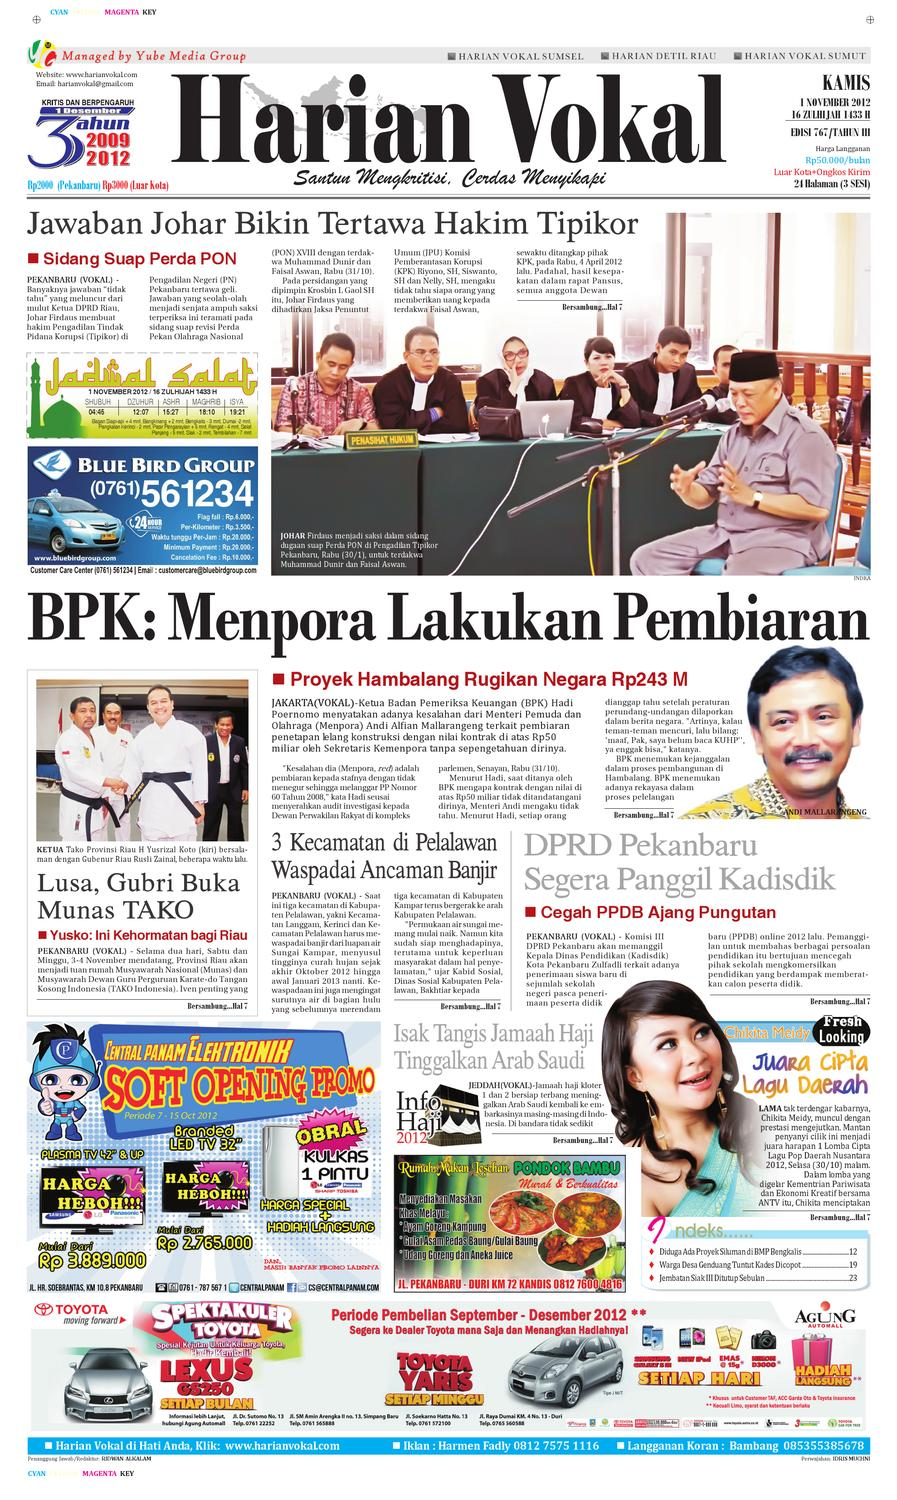 Harian Vokal Edisi 1 November 2012 by Riau Publisher - issuu 222280cb00